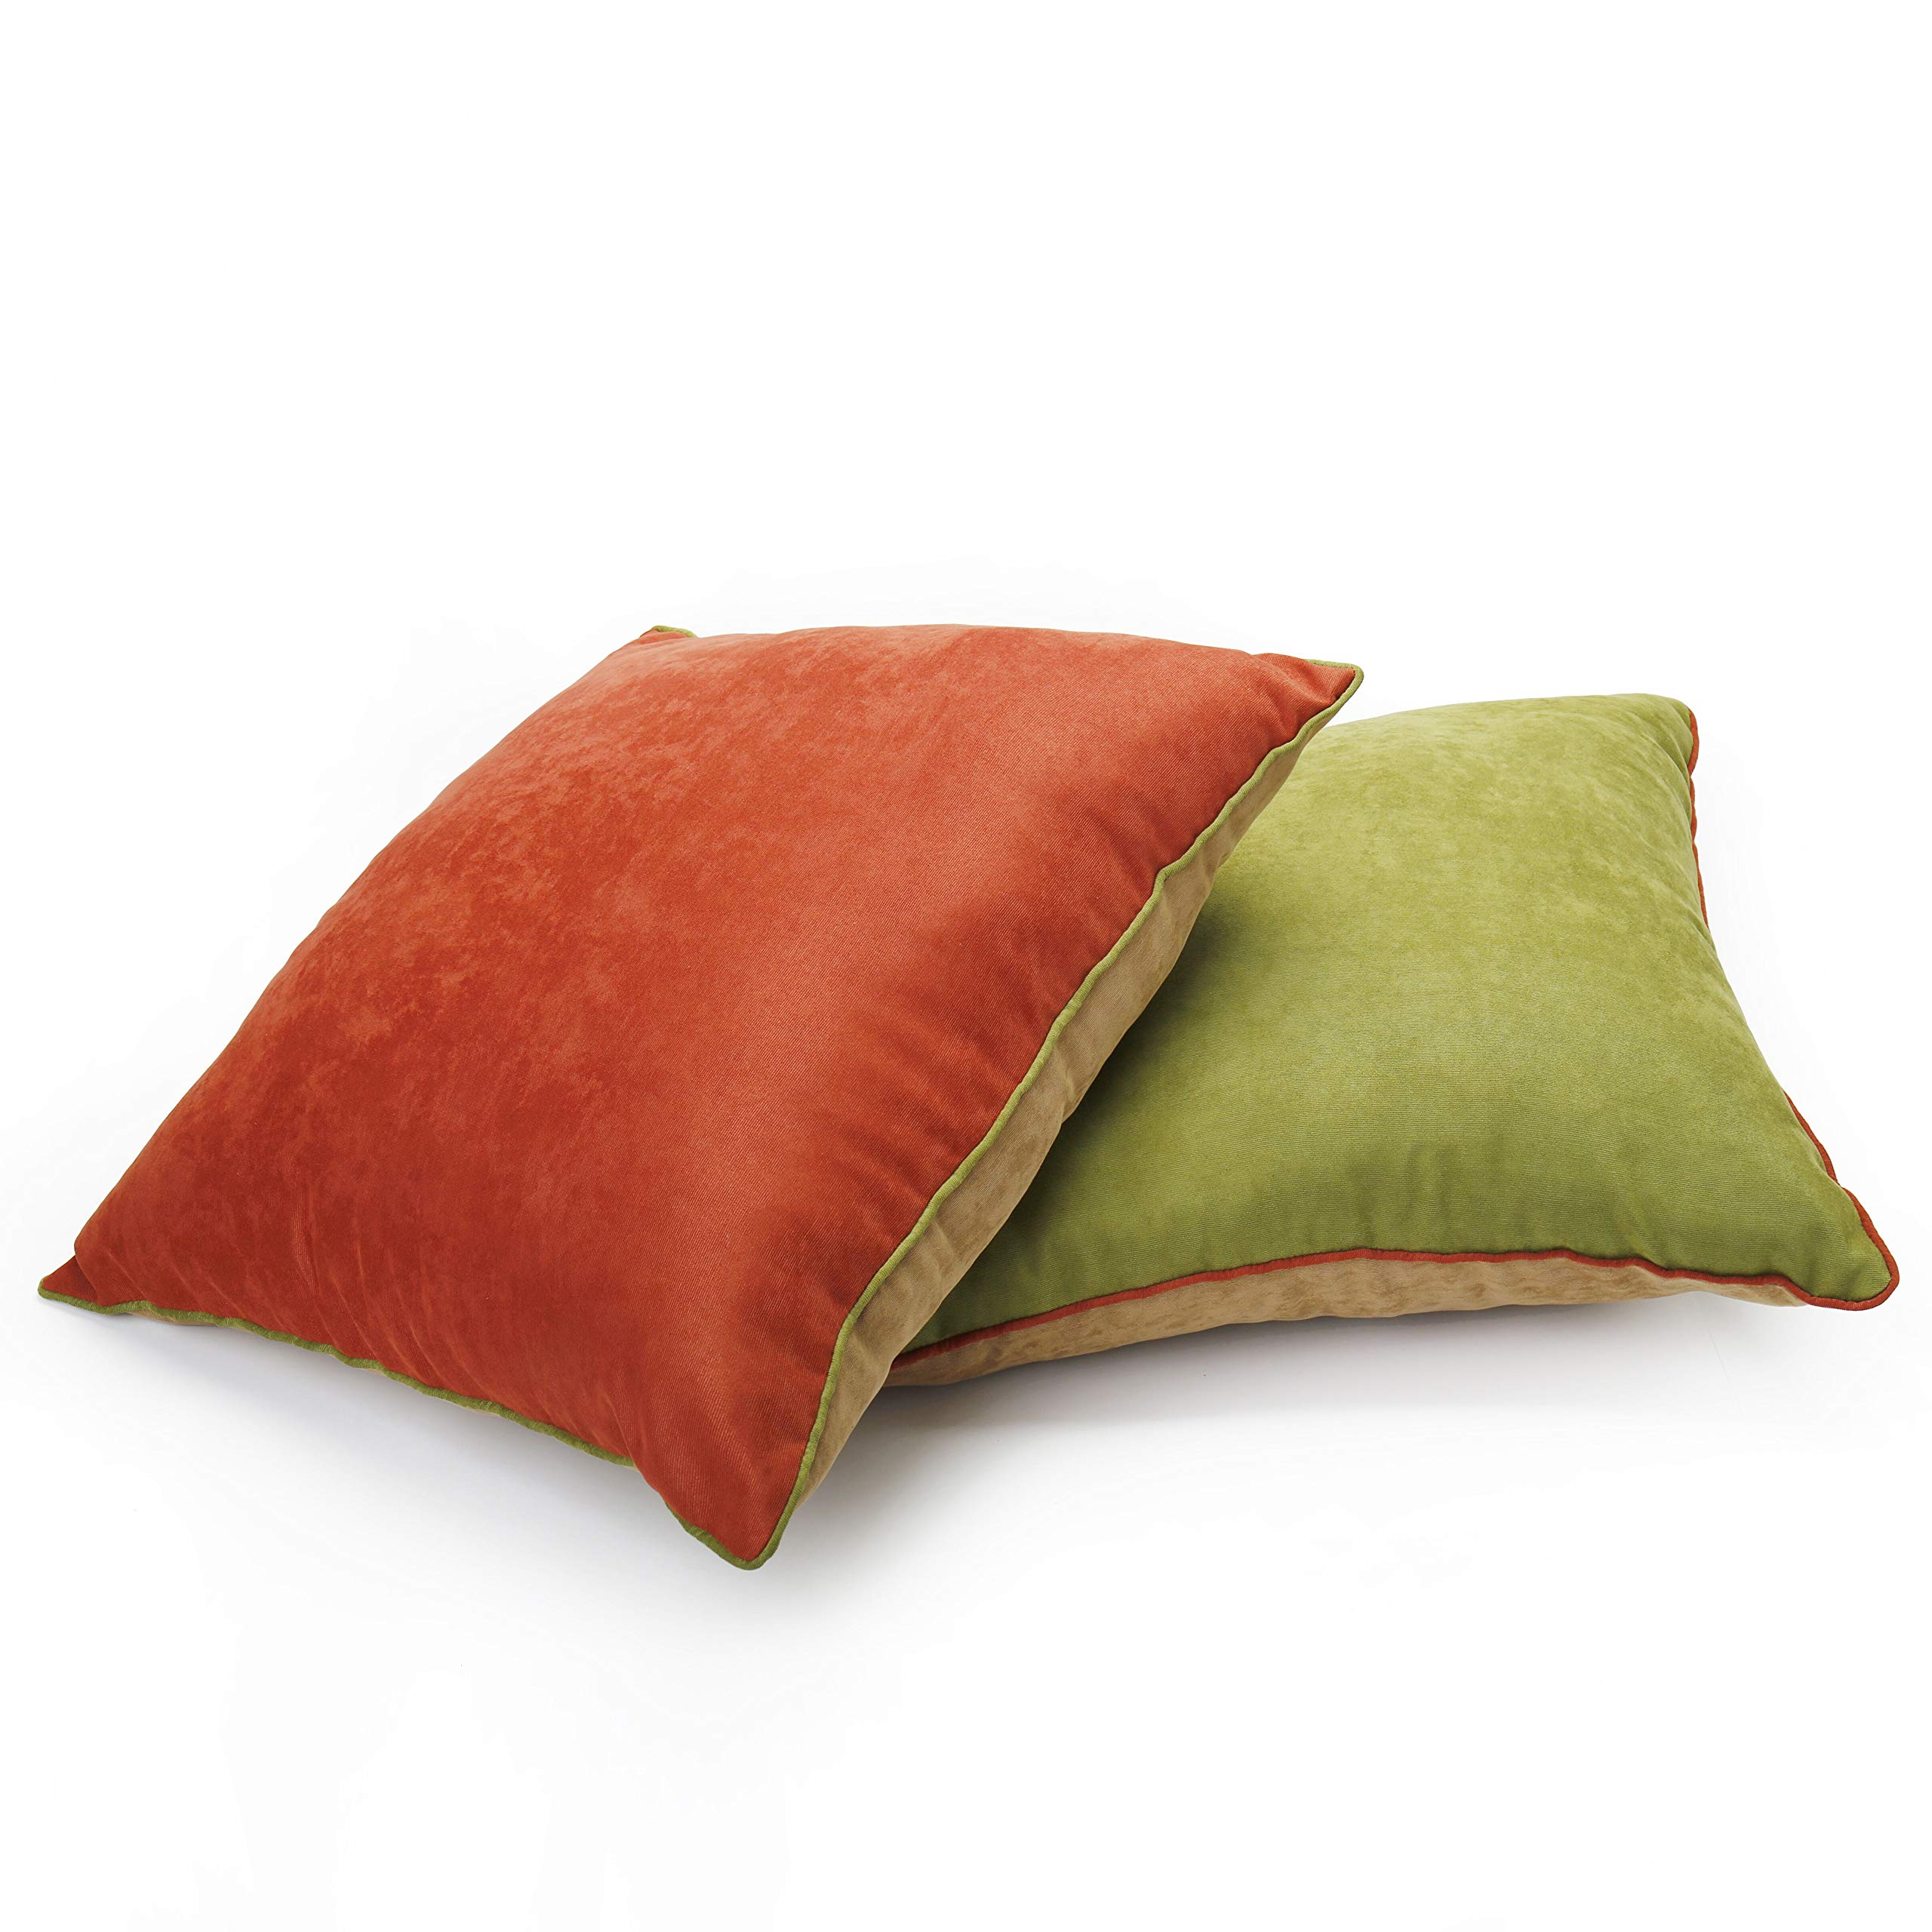 DOZZZ 2 Pack Reversible Corduroy Decorative Throw Pillows Square Cushion for Sofa Couch Bed Chair Country House 18'' x 18''